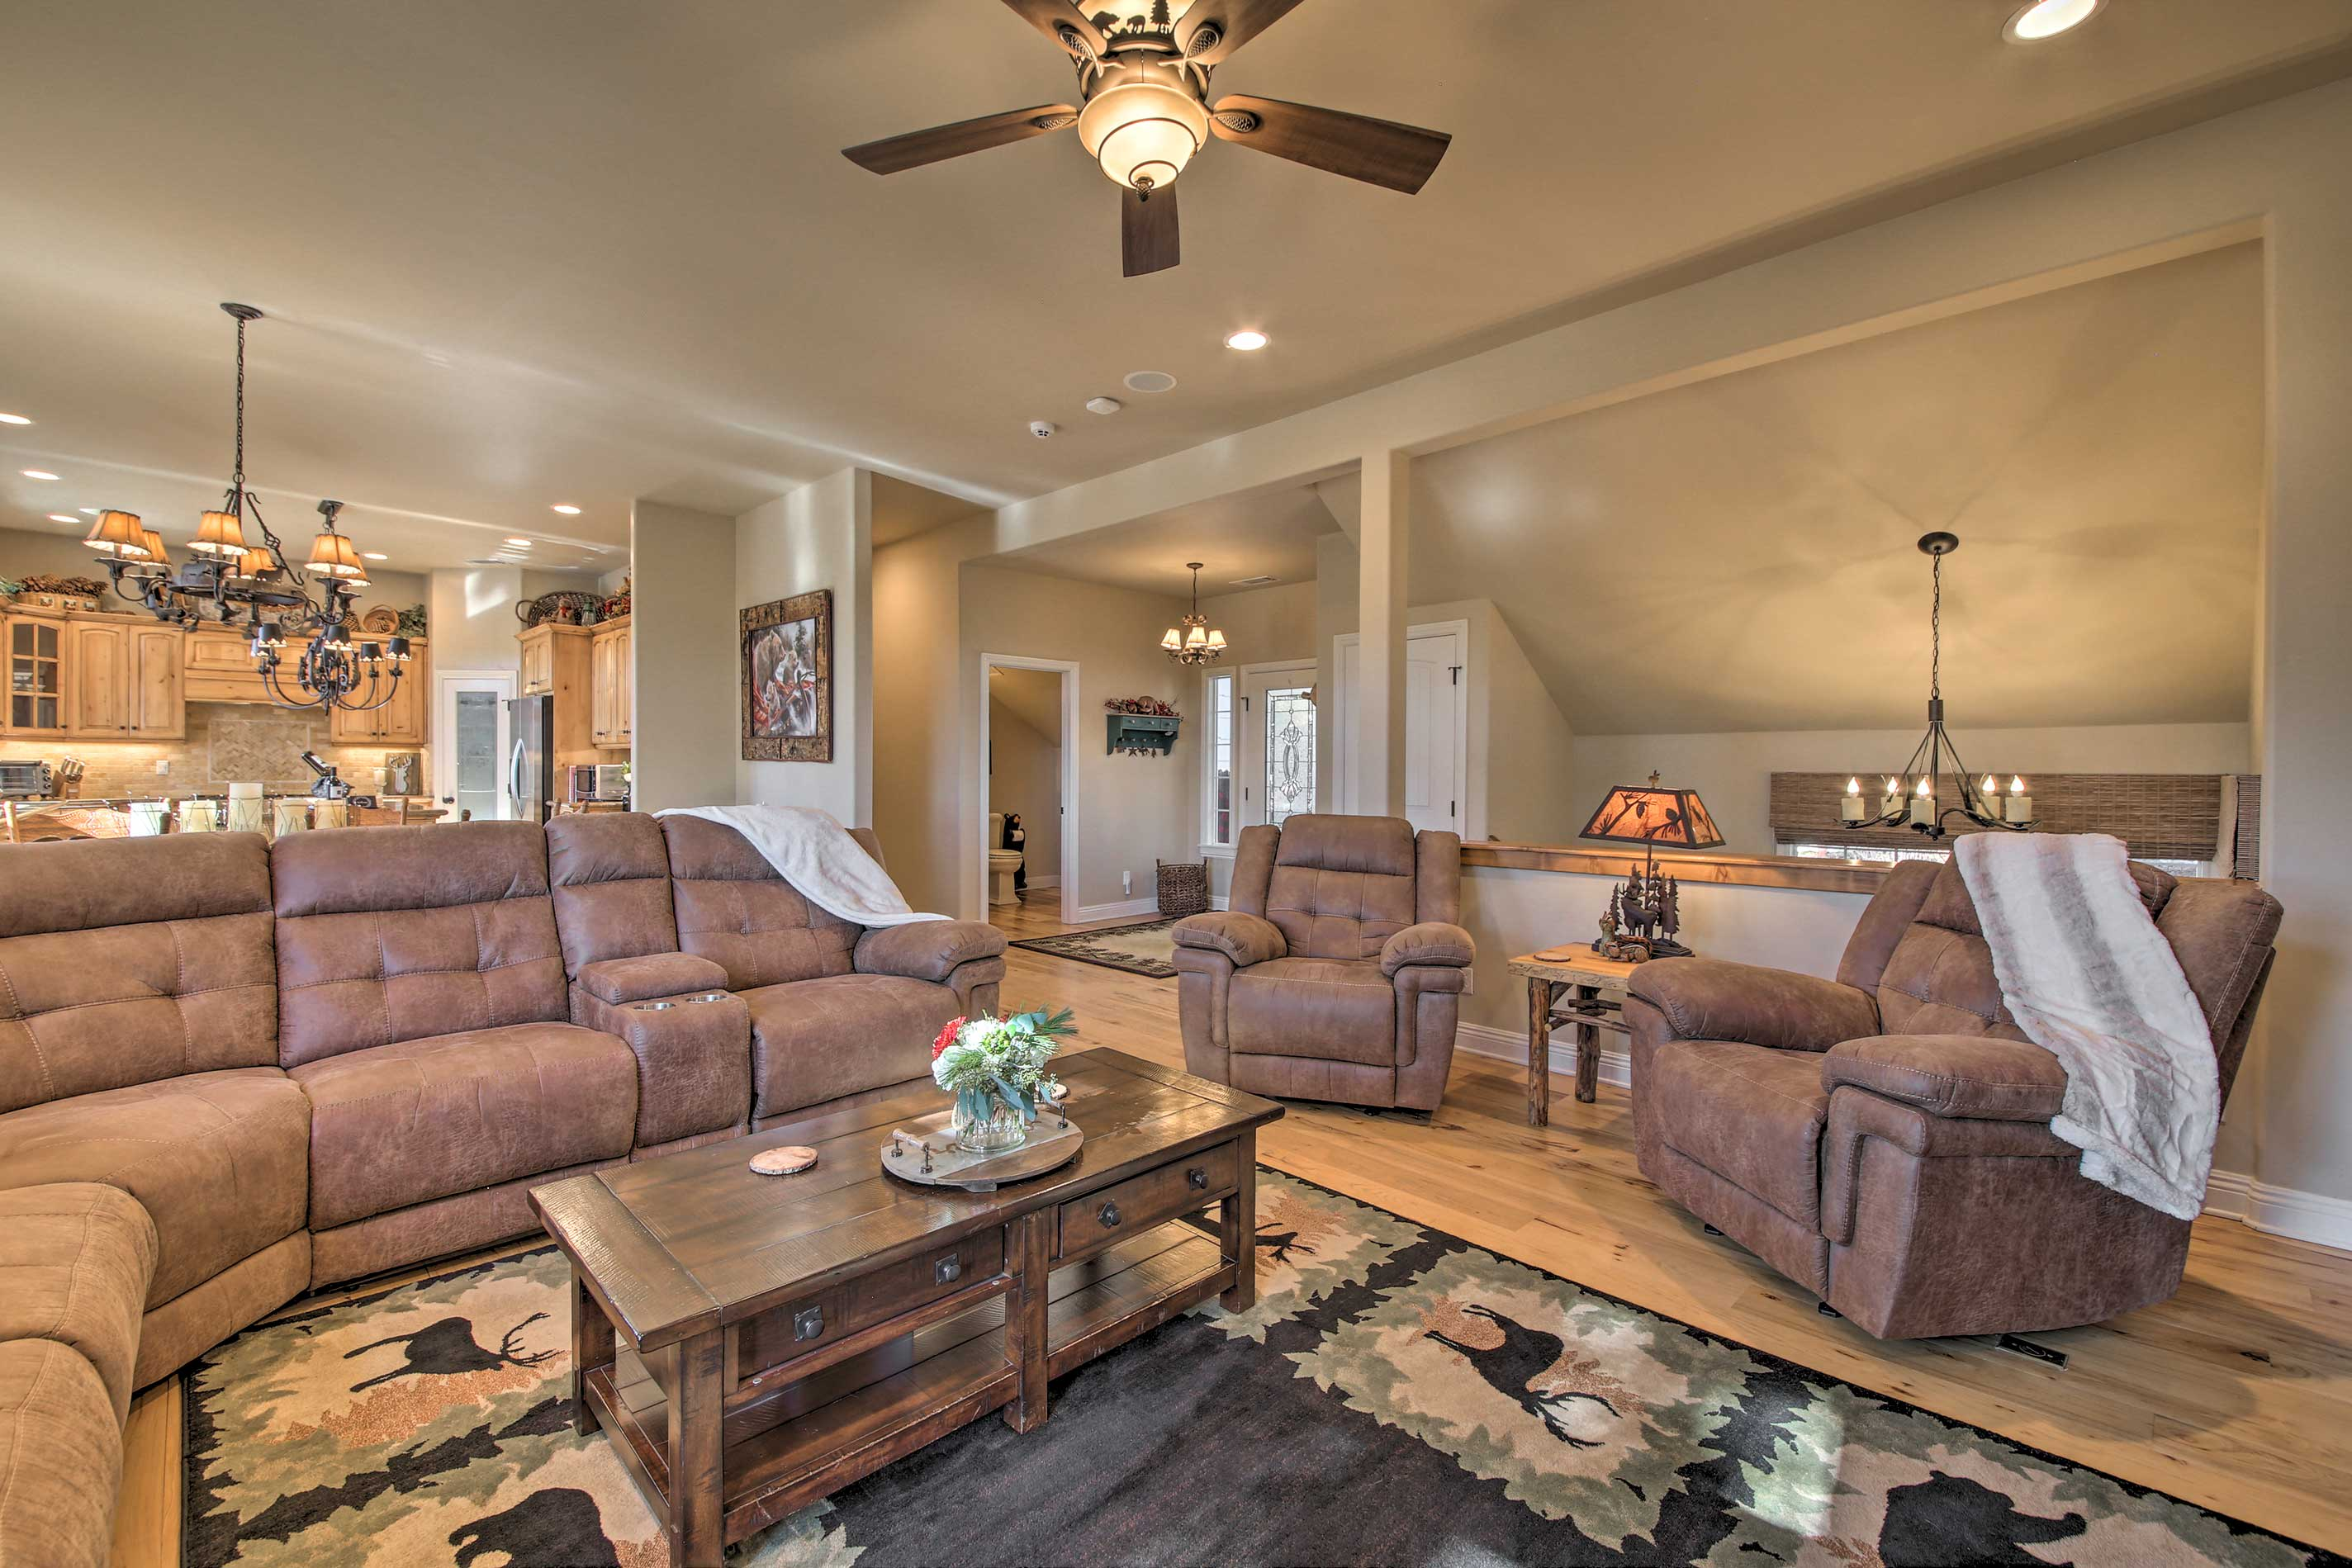 Rest your feet in one of the living room's comfy reclining chairs.